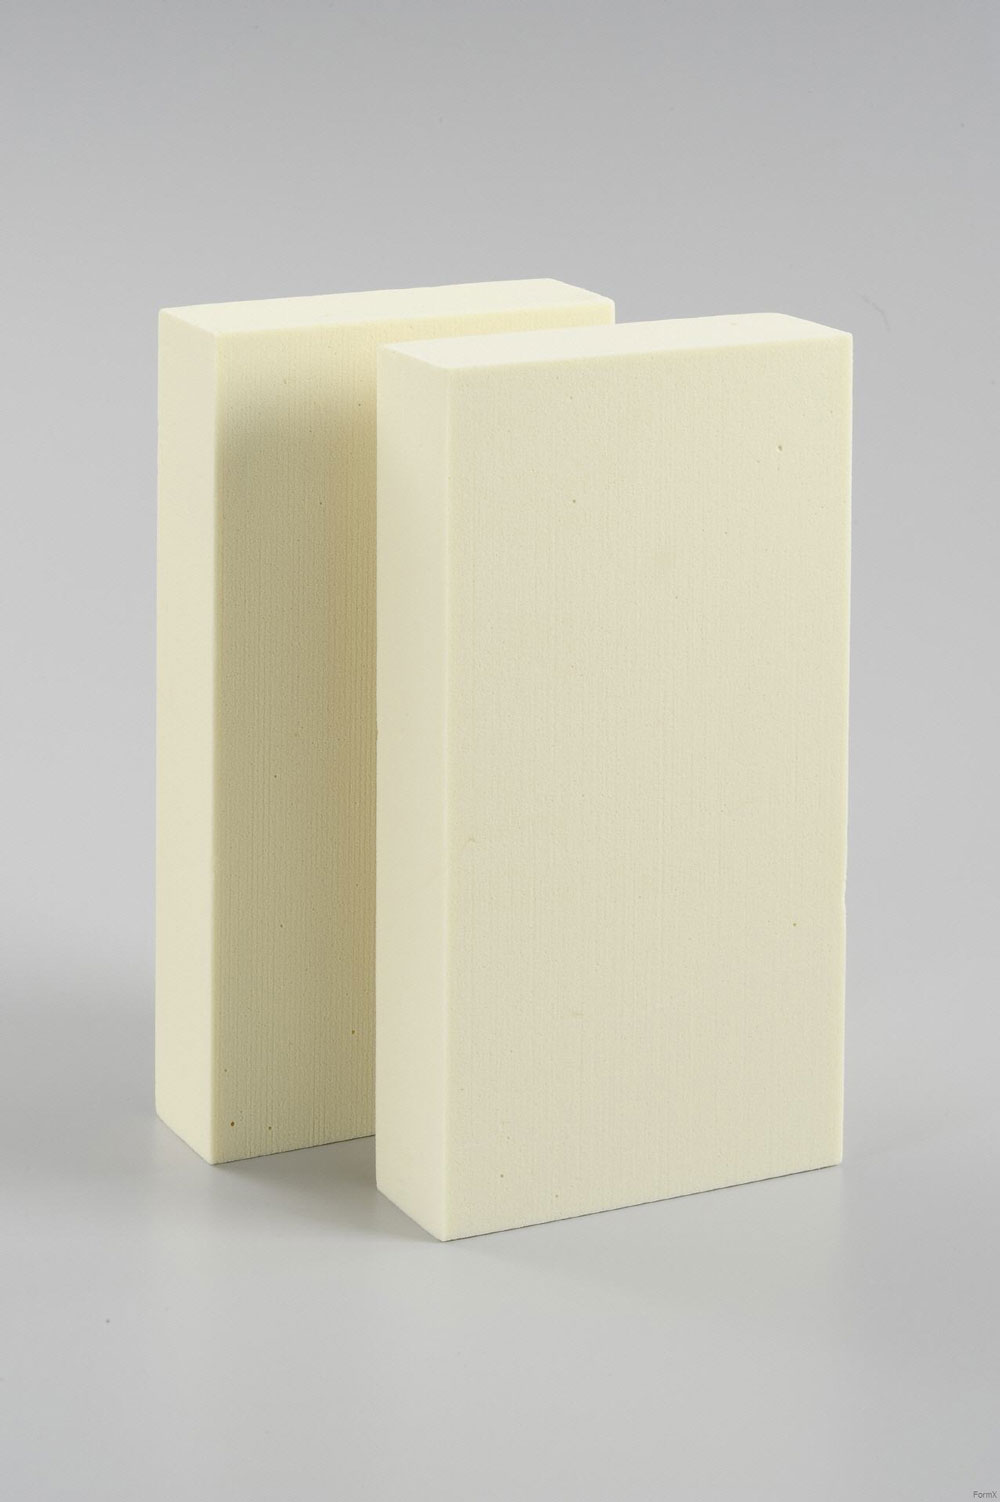 Sculpture Block 12 X 6 X 2 Pack Of 2